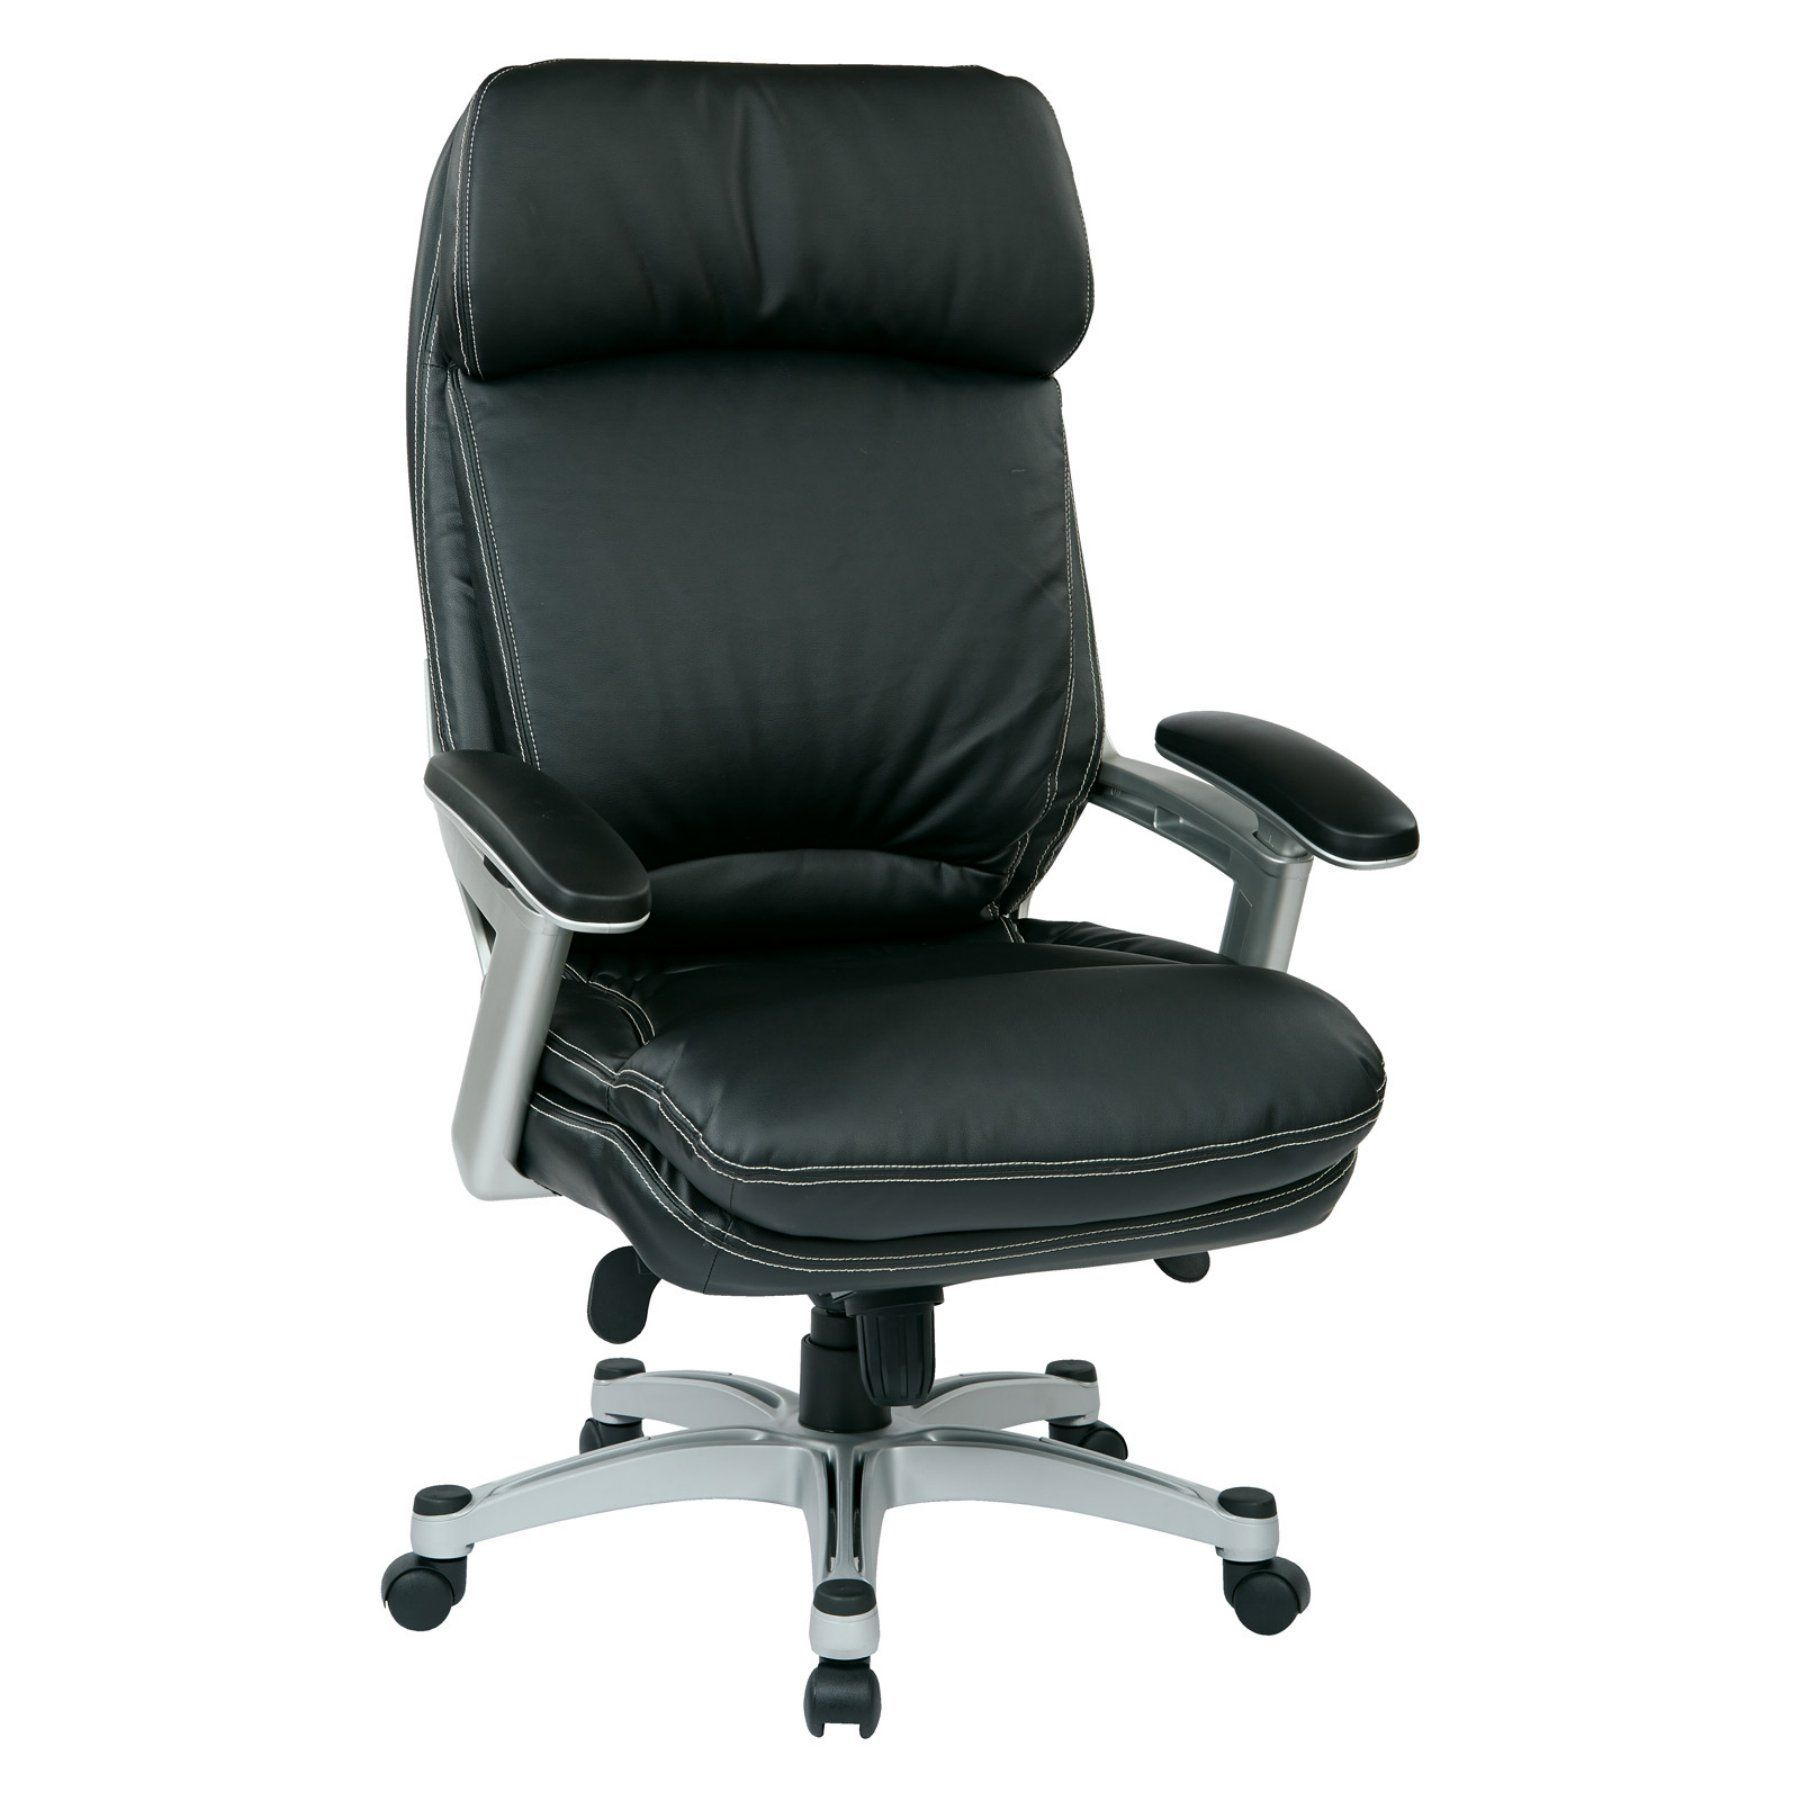 Work Smart Black And Silver Bonded Leather Executive Office Chair Oph62606 Ec3